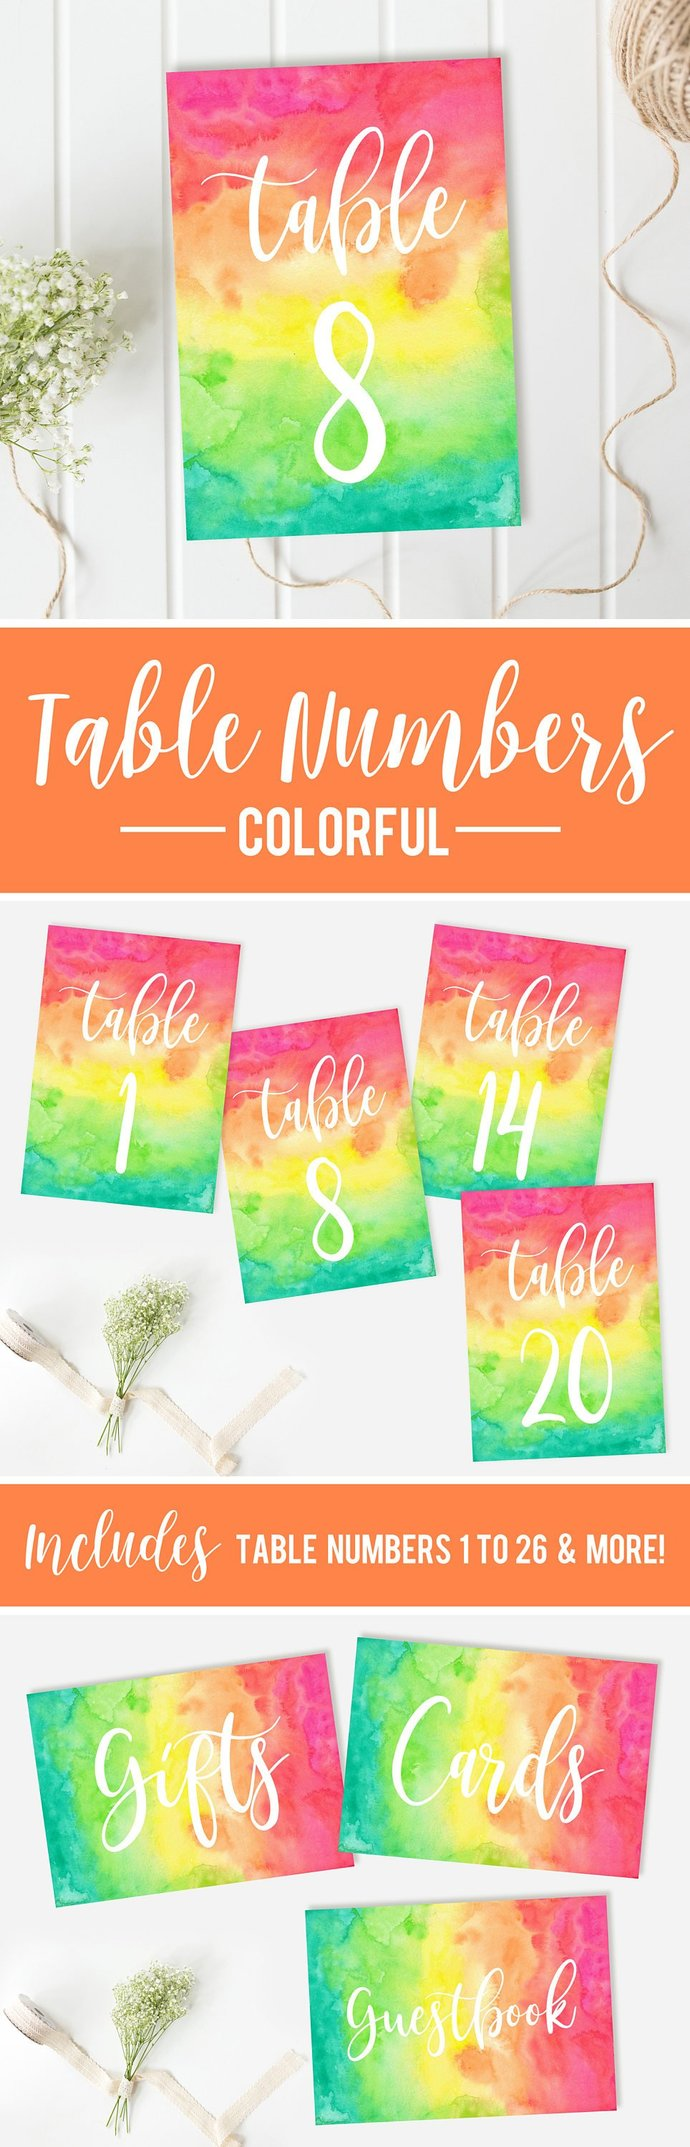 Colorful Table Numbers, Multi color Table Numbers, Wedding Table Numbers, DIY